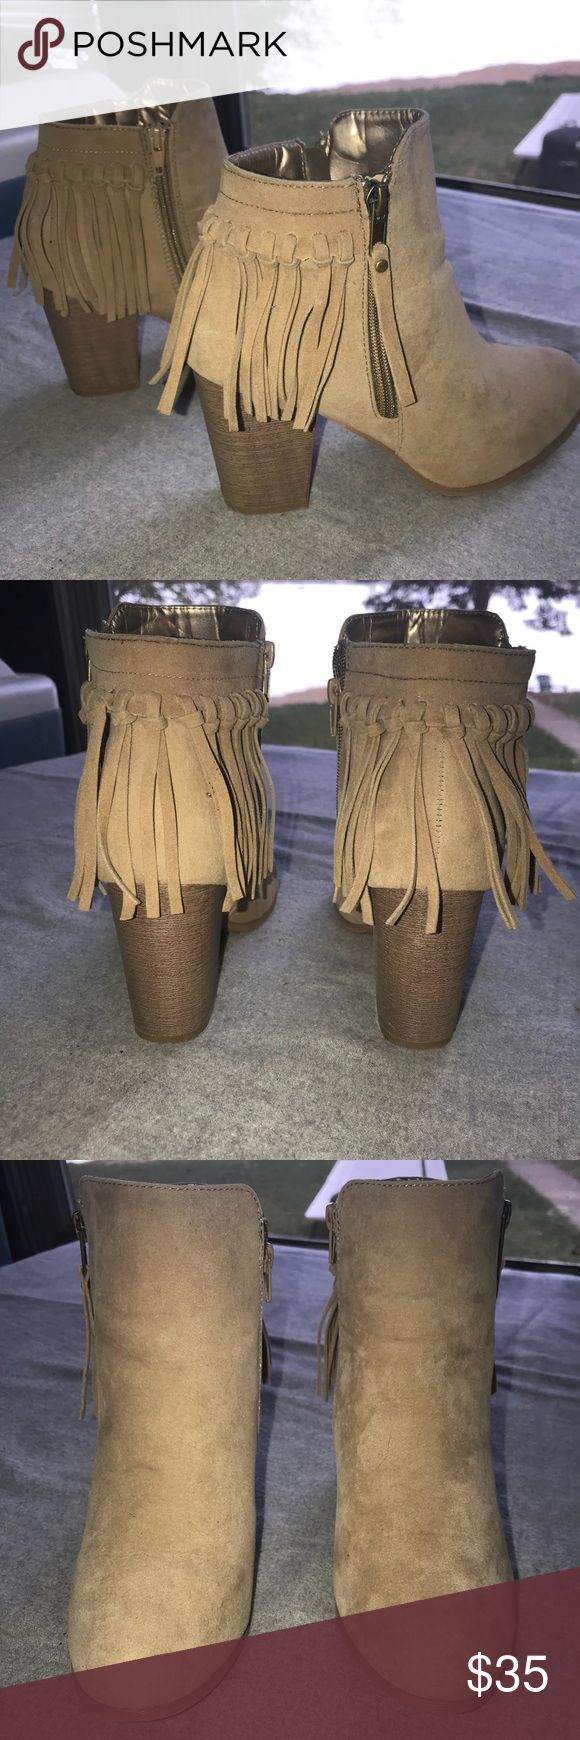 NEW FRINGE TAUPE BOOTIES Booties from tillys. Size 9. Worn once. Tilly's Shoes Ankle Boots & Booties